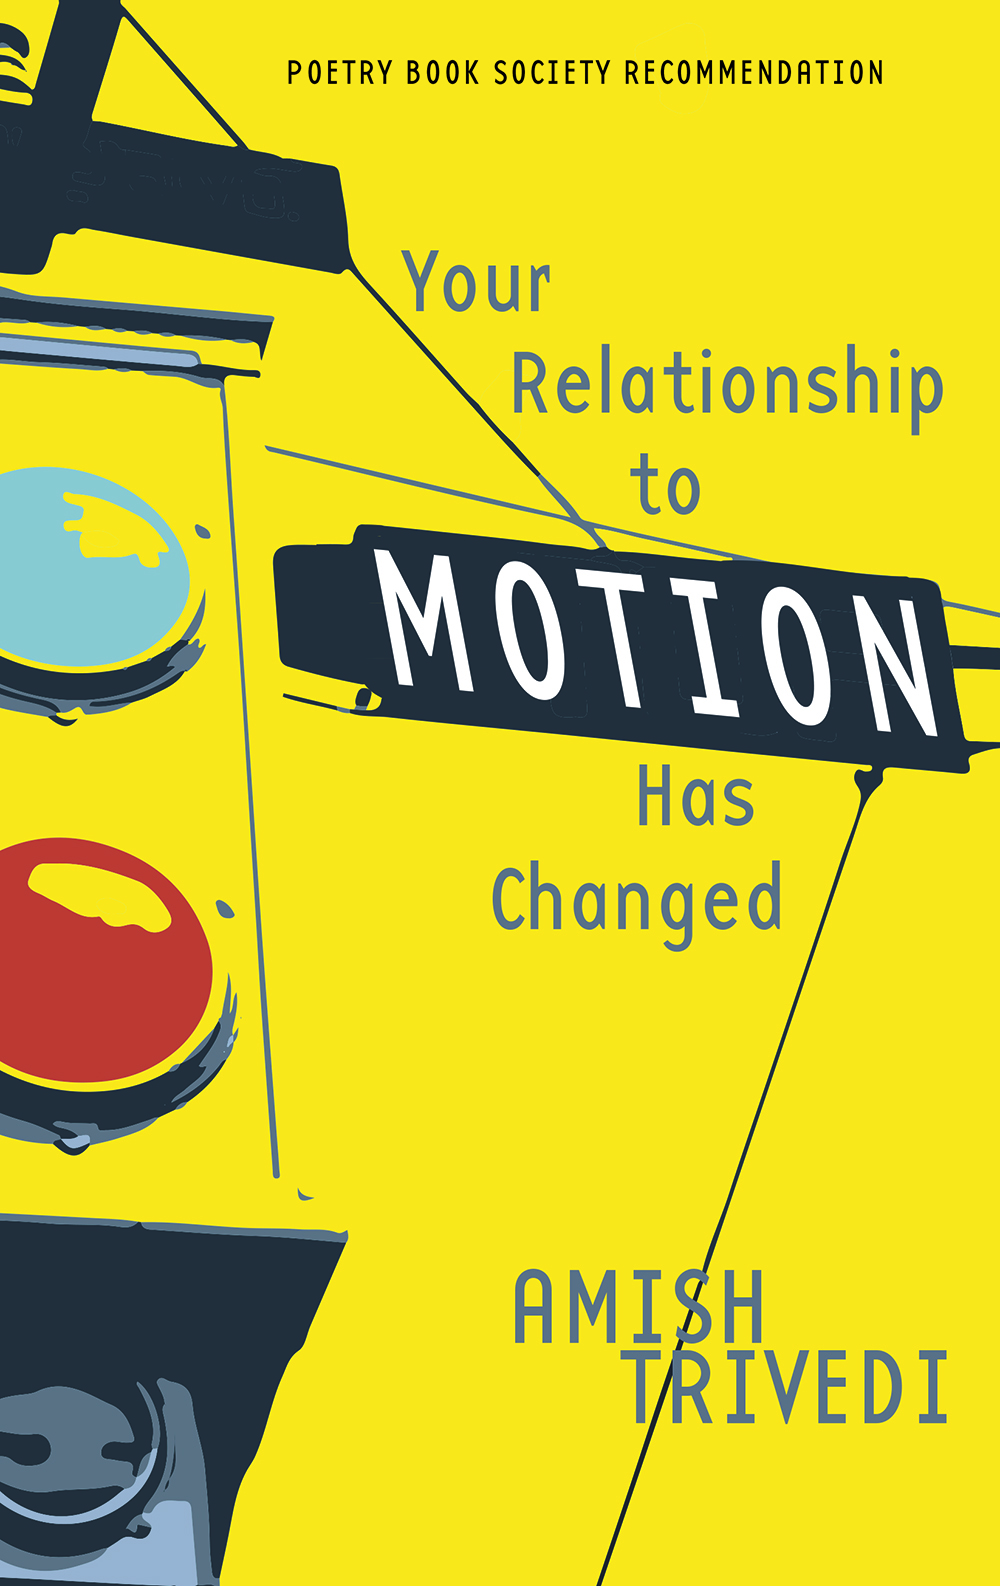 Your Relationship to Motion Has Changed